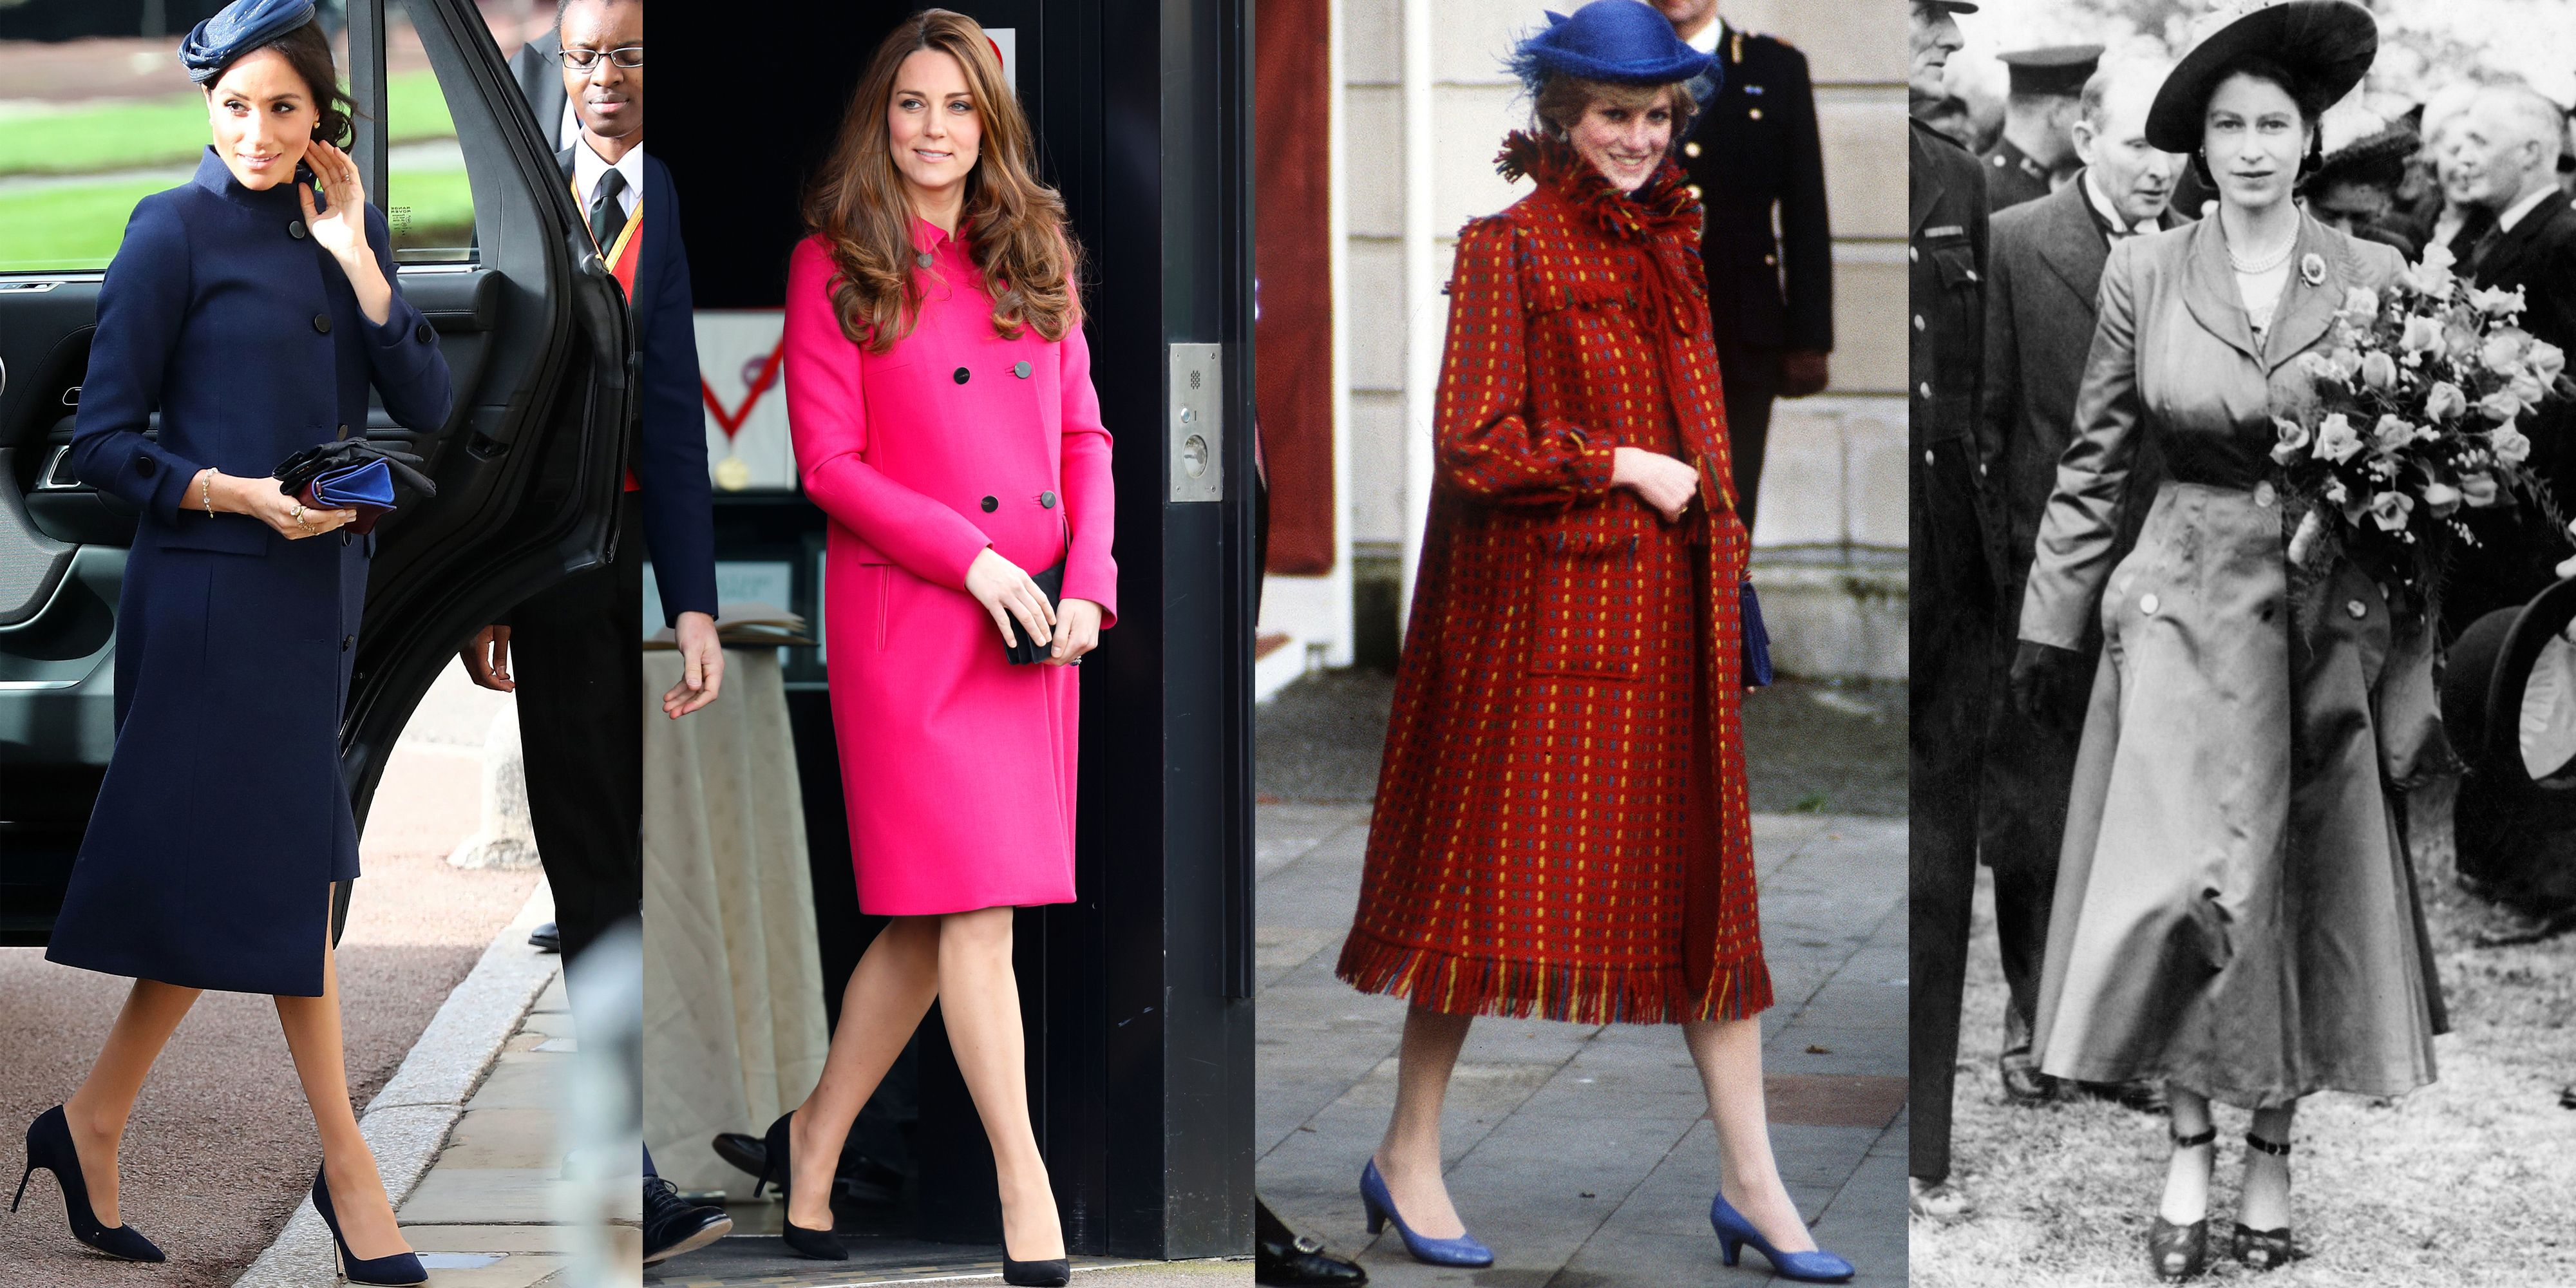 How Royals Announced Their Pregnancies, From Queen Elizabeth II To Meghan Markle